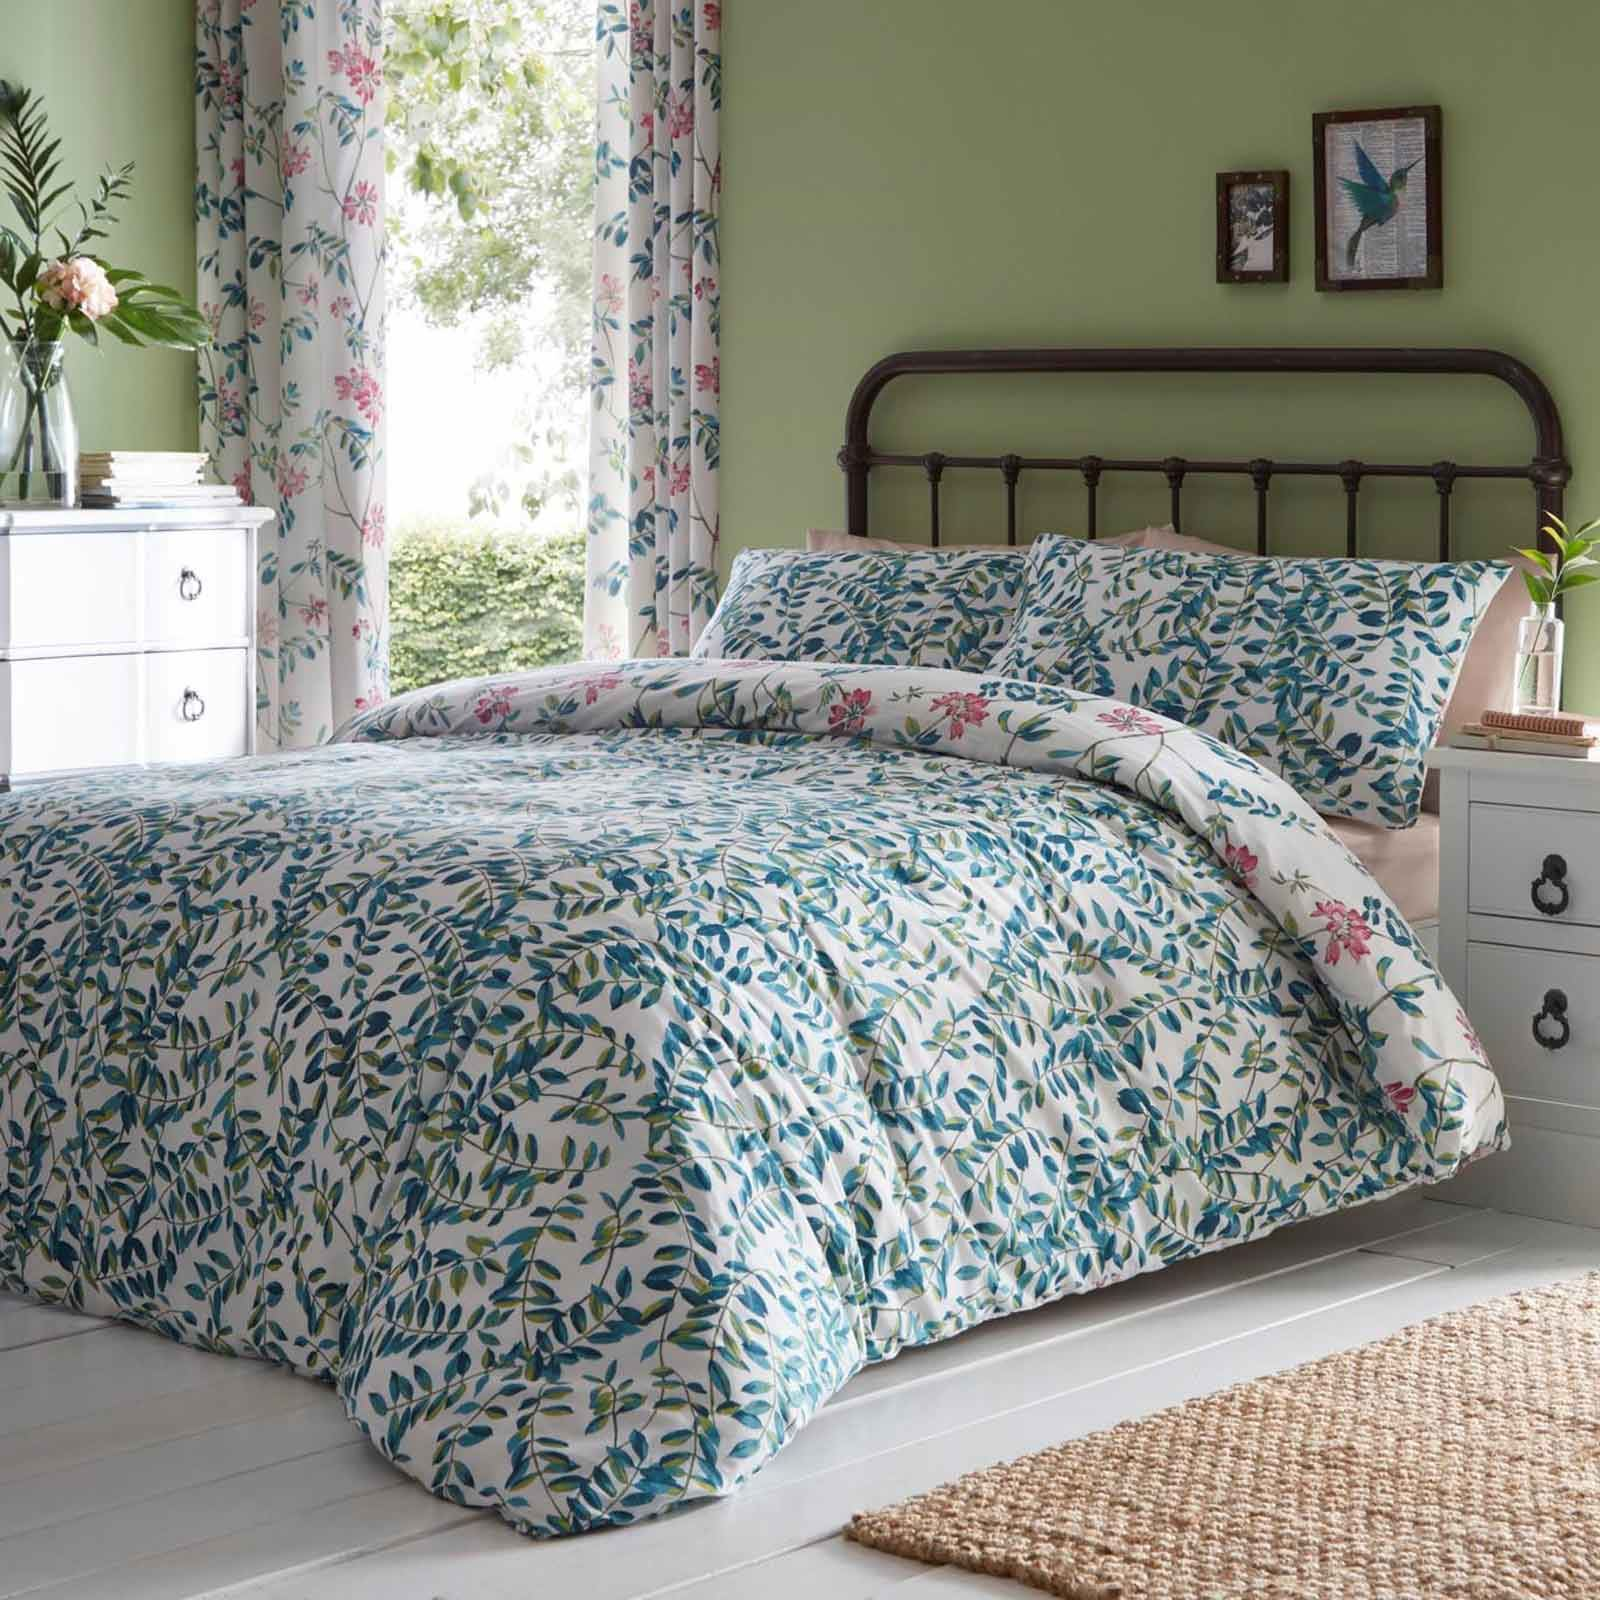 Teal Quilt Cover Teal Floral Duvet Covers Marldon Reversible Printed Easy